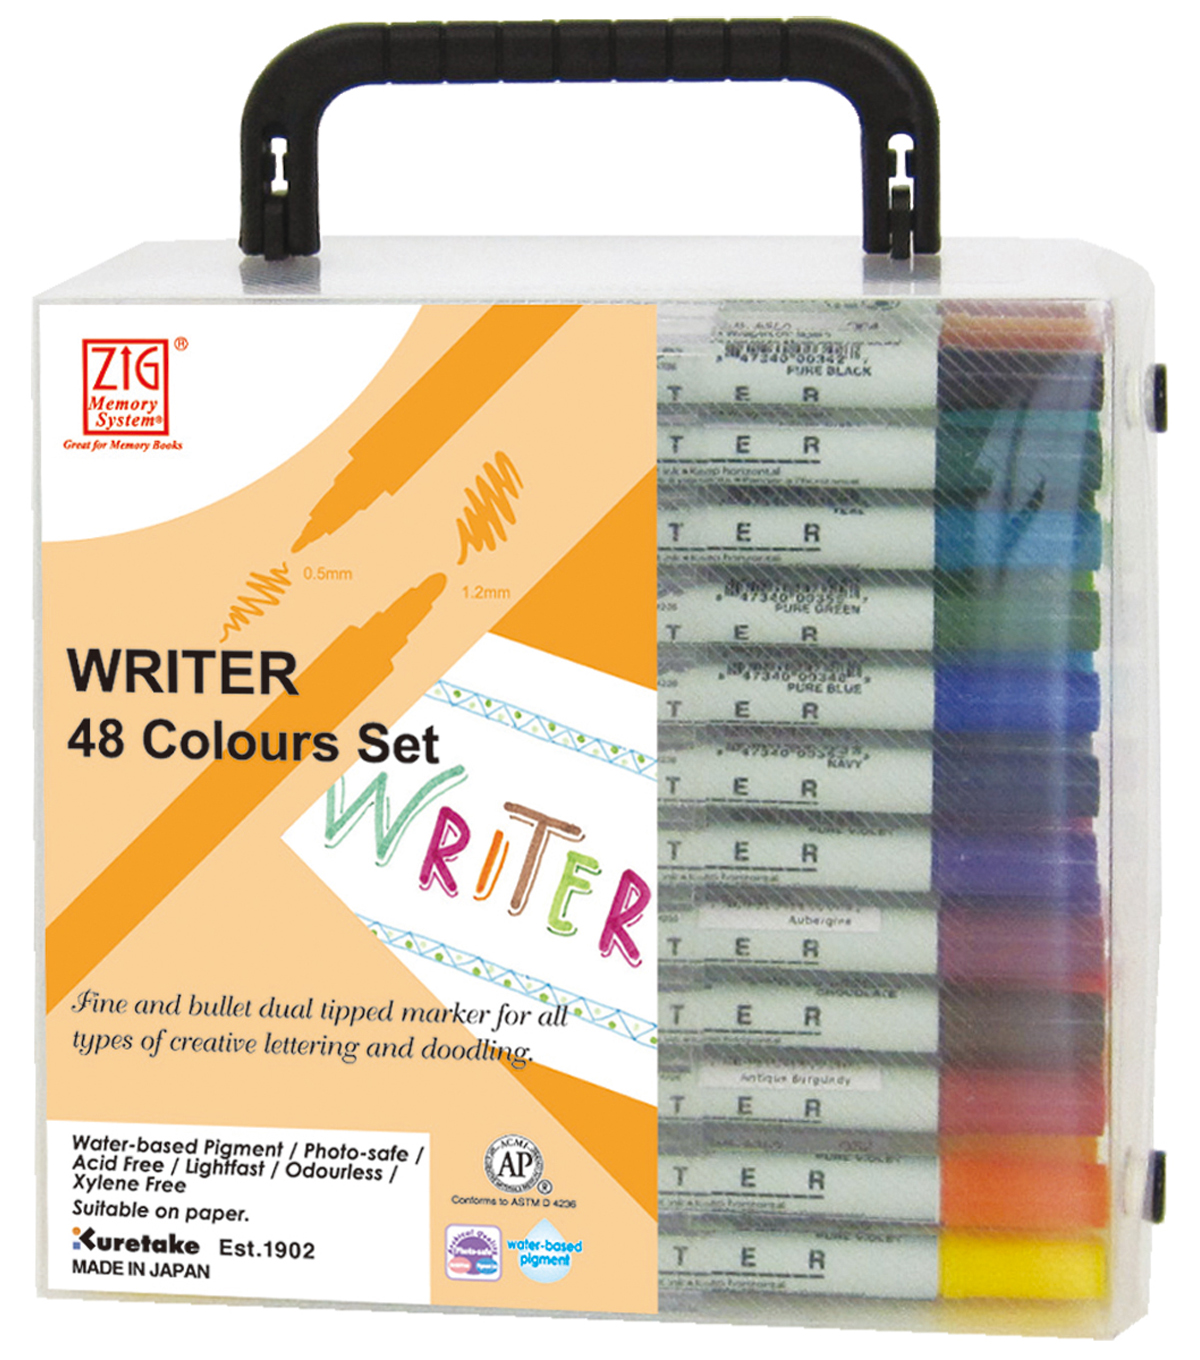 Zig Memory System Writer Dual-Tip Markers